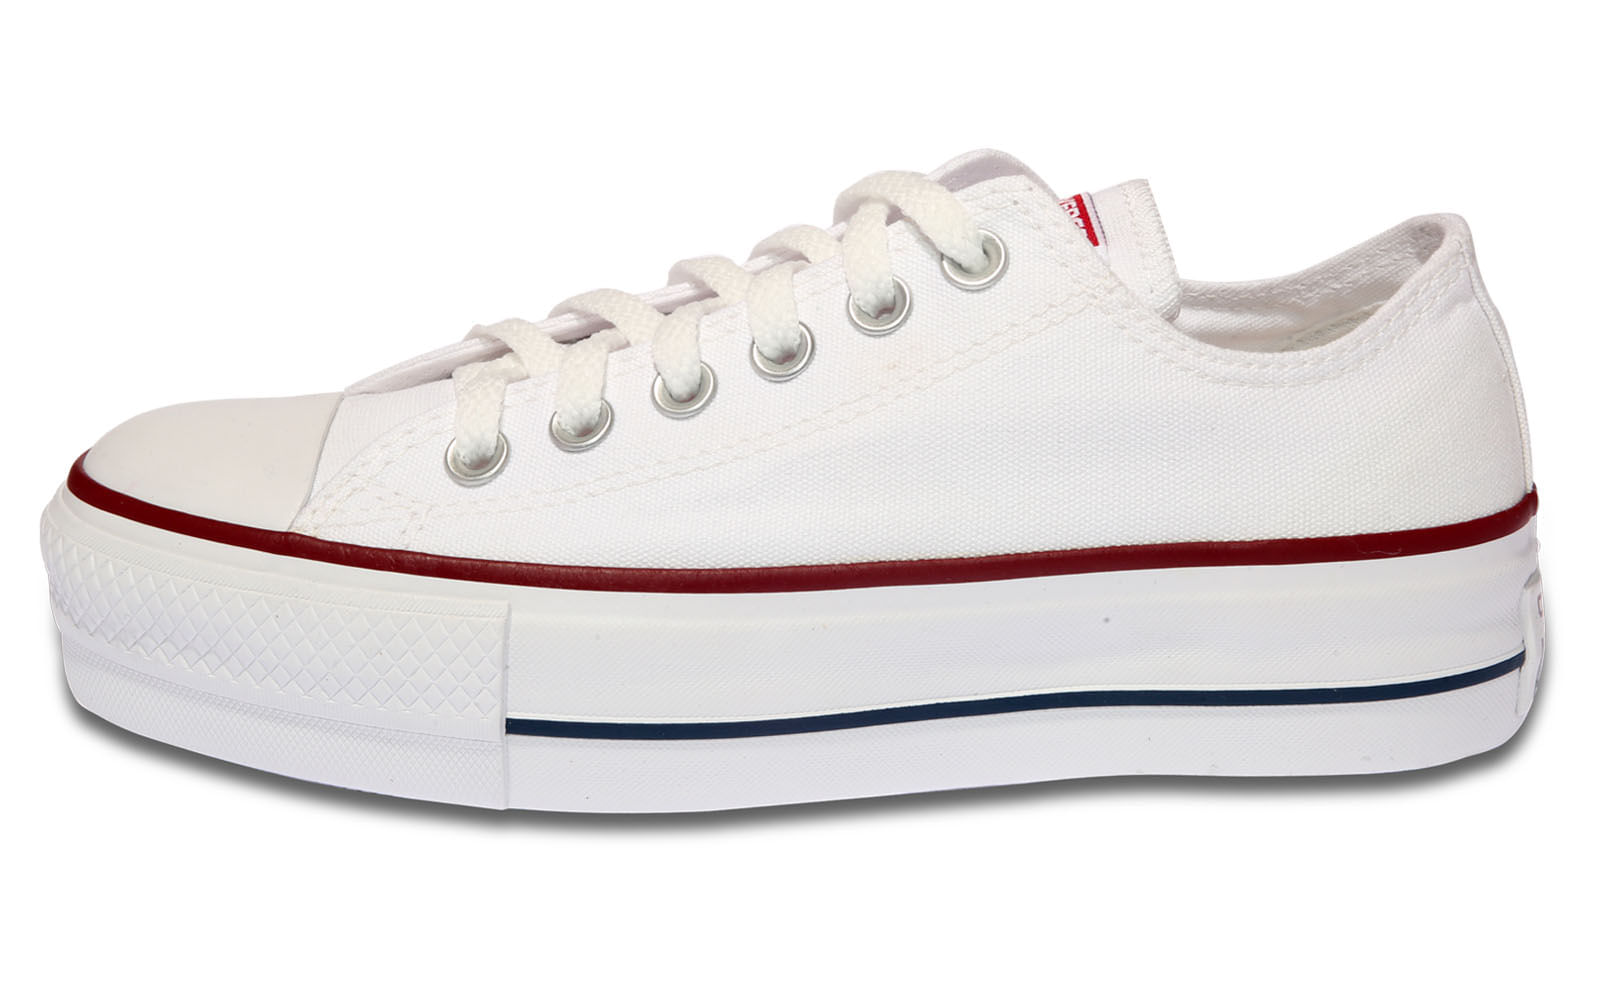 Tenis Converse Chuck Taylor All Star Flatform Branco - theboxproject 6e4f58a869b98